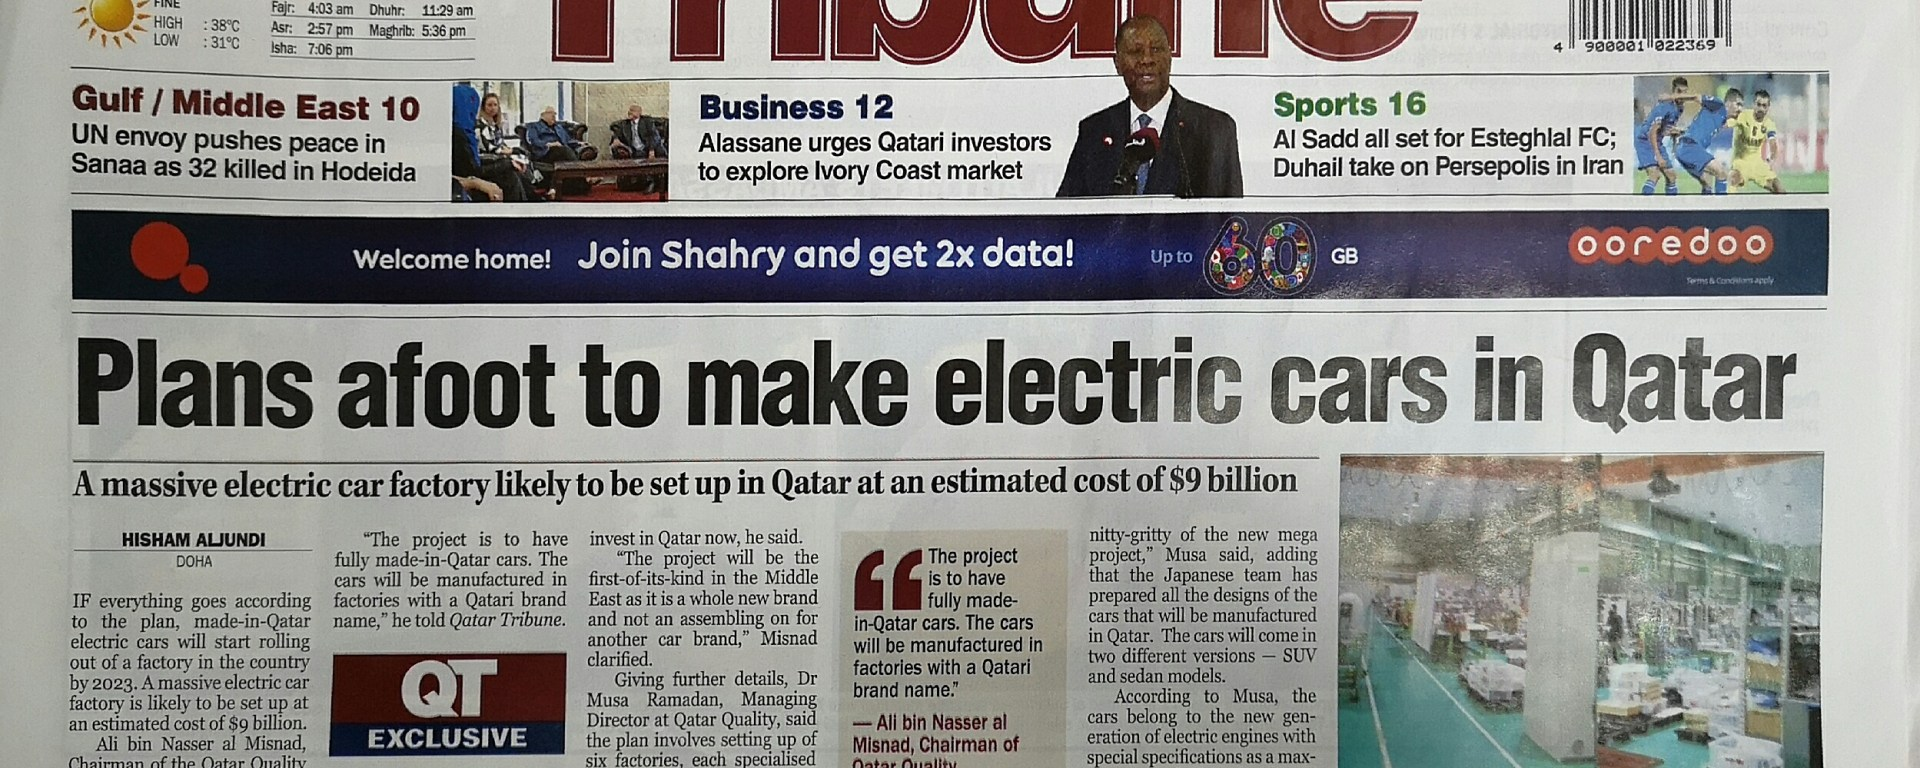 Front page of Qatar Tribune on September 17 featuring a story of Qatar planning to build an electric vehicle factory